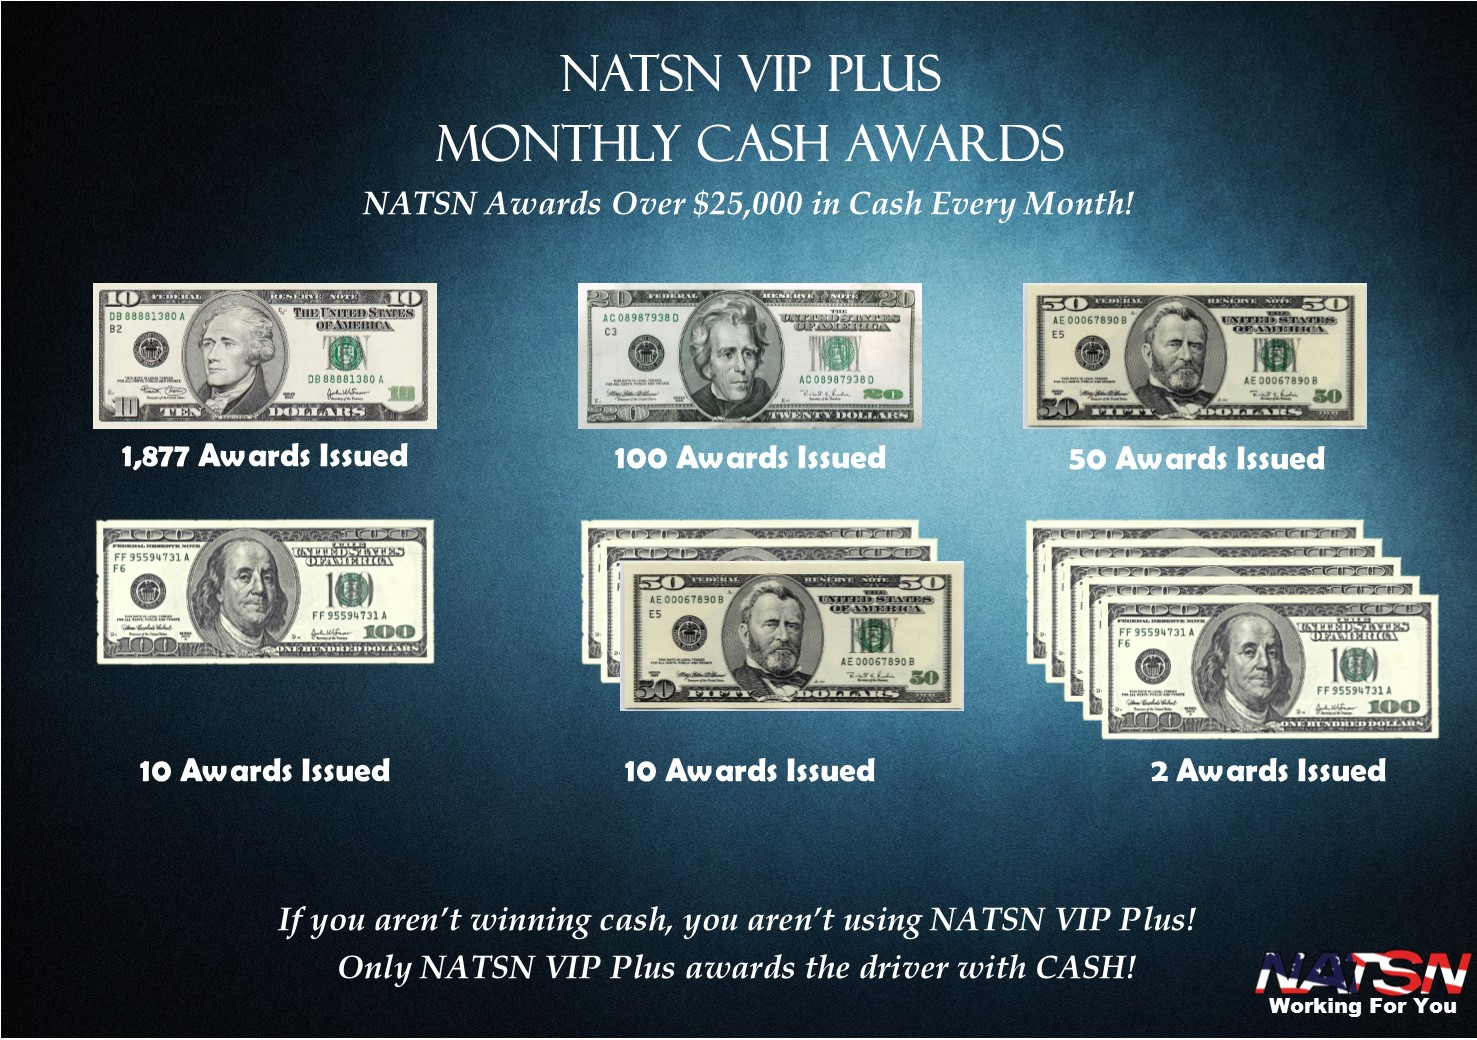 driver loyalty, cash awards, $25,000 in cash awards, the best driver loyalty program, NATSN, NATSN vip plus, truck driver, truck stop